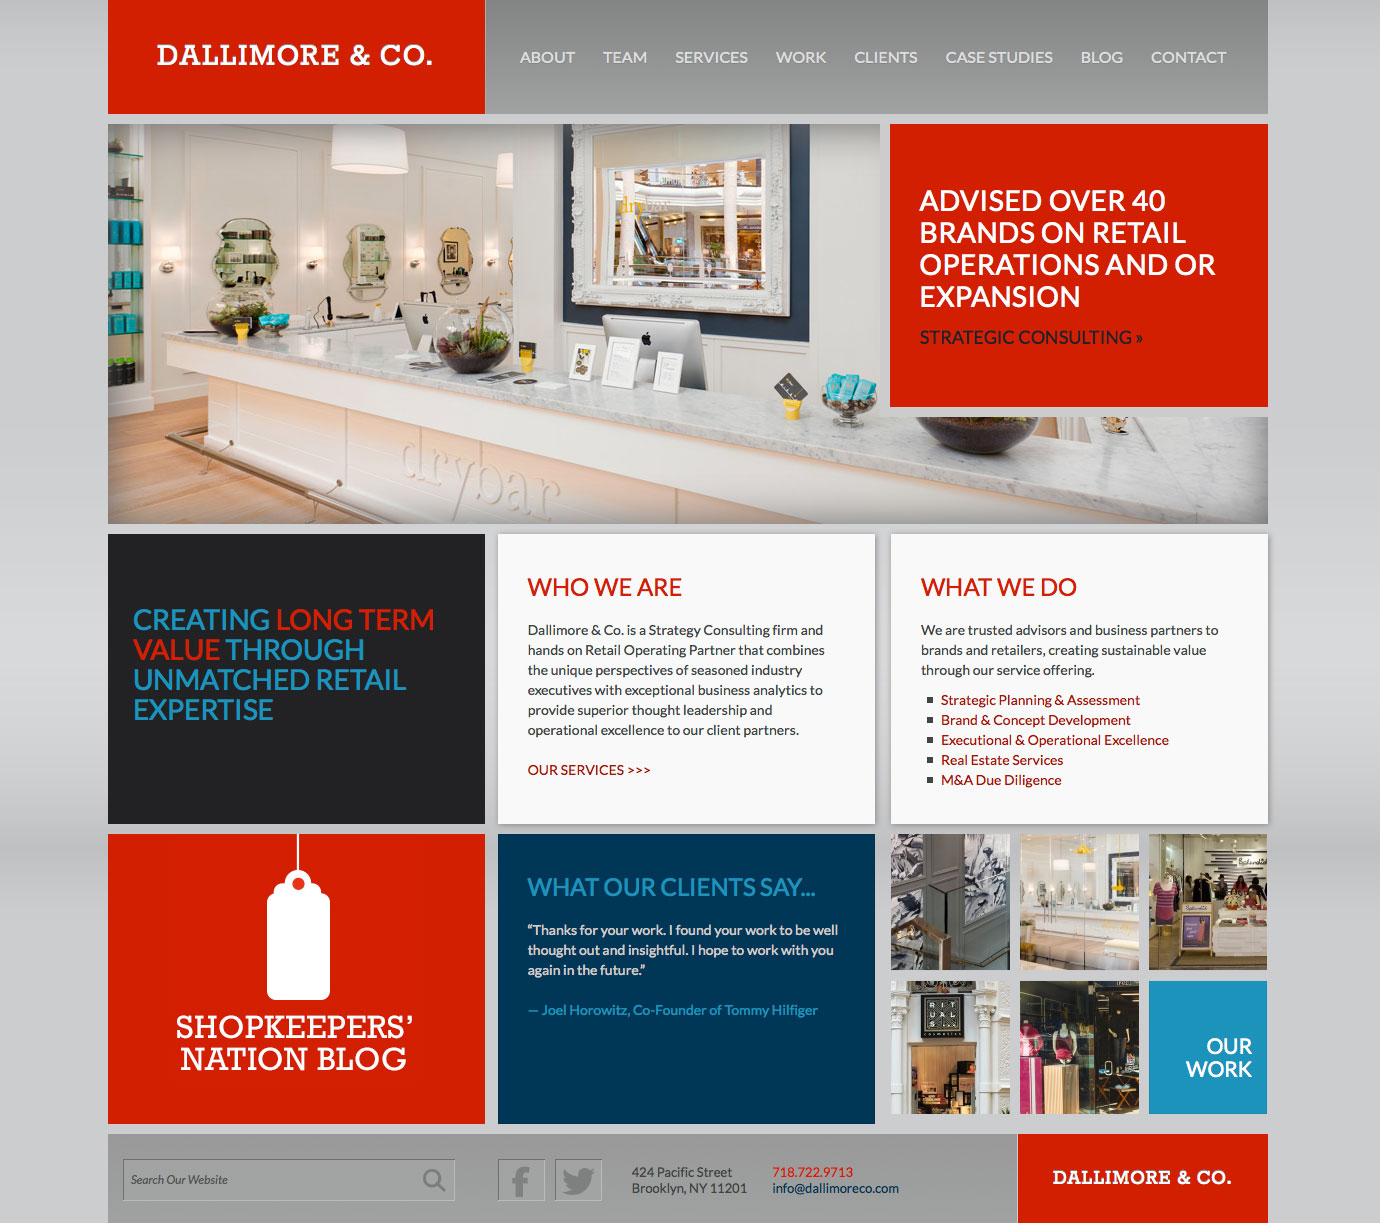 Dallimore & Co. Case homepage